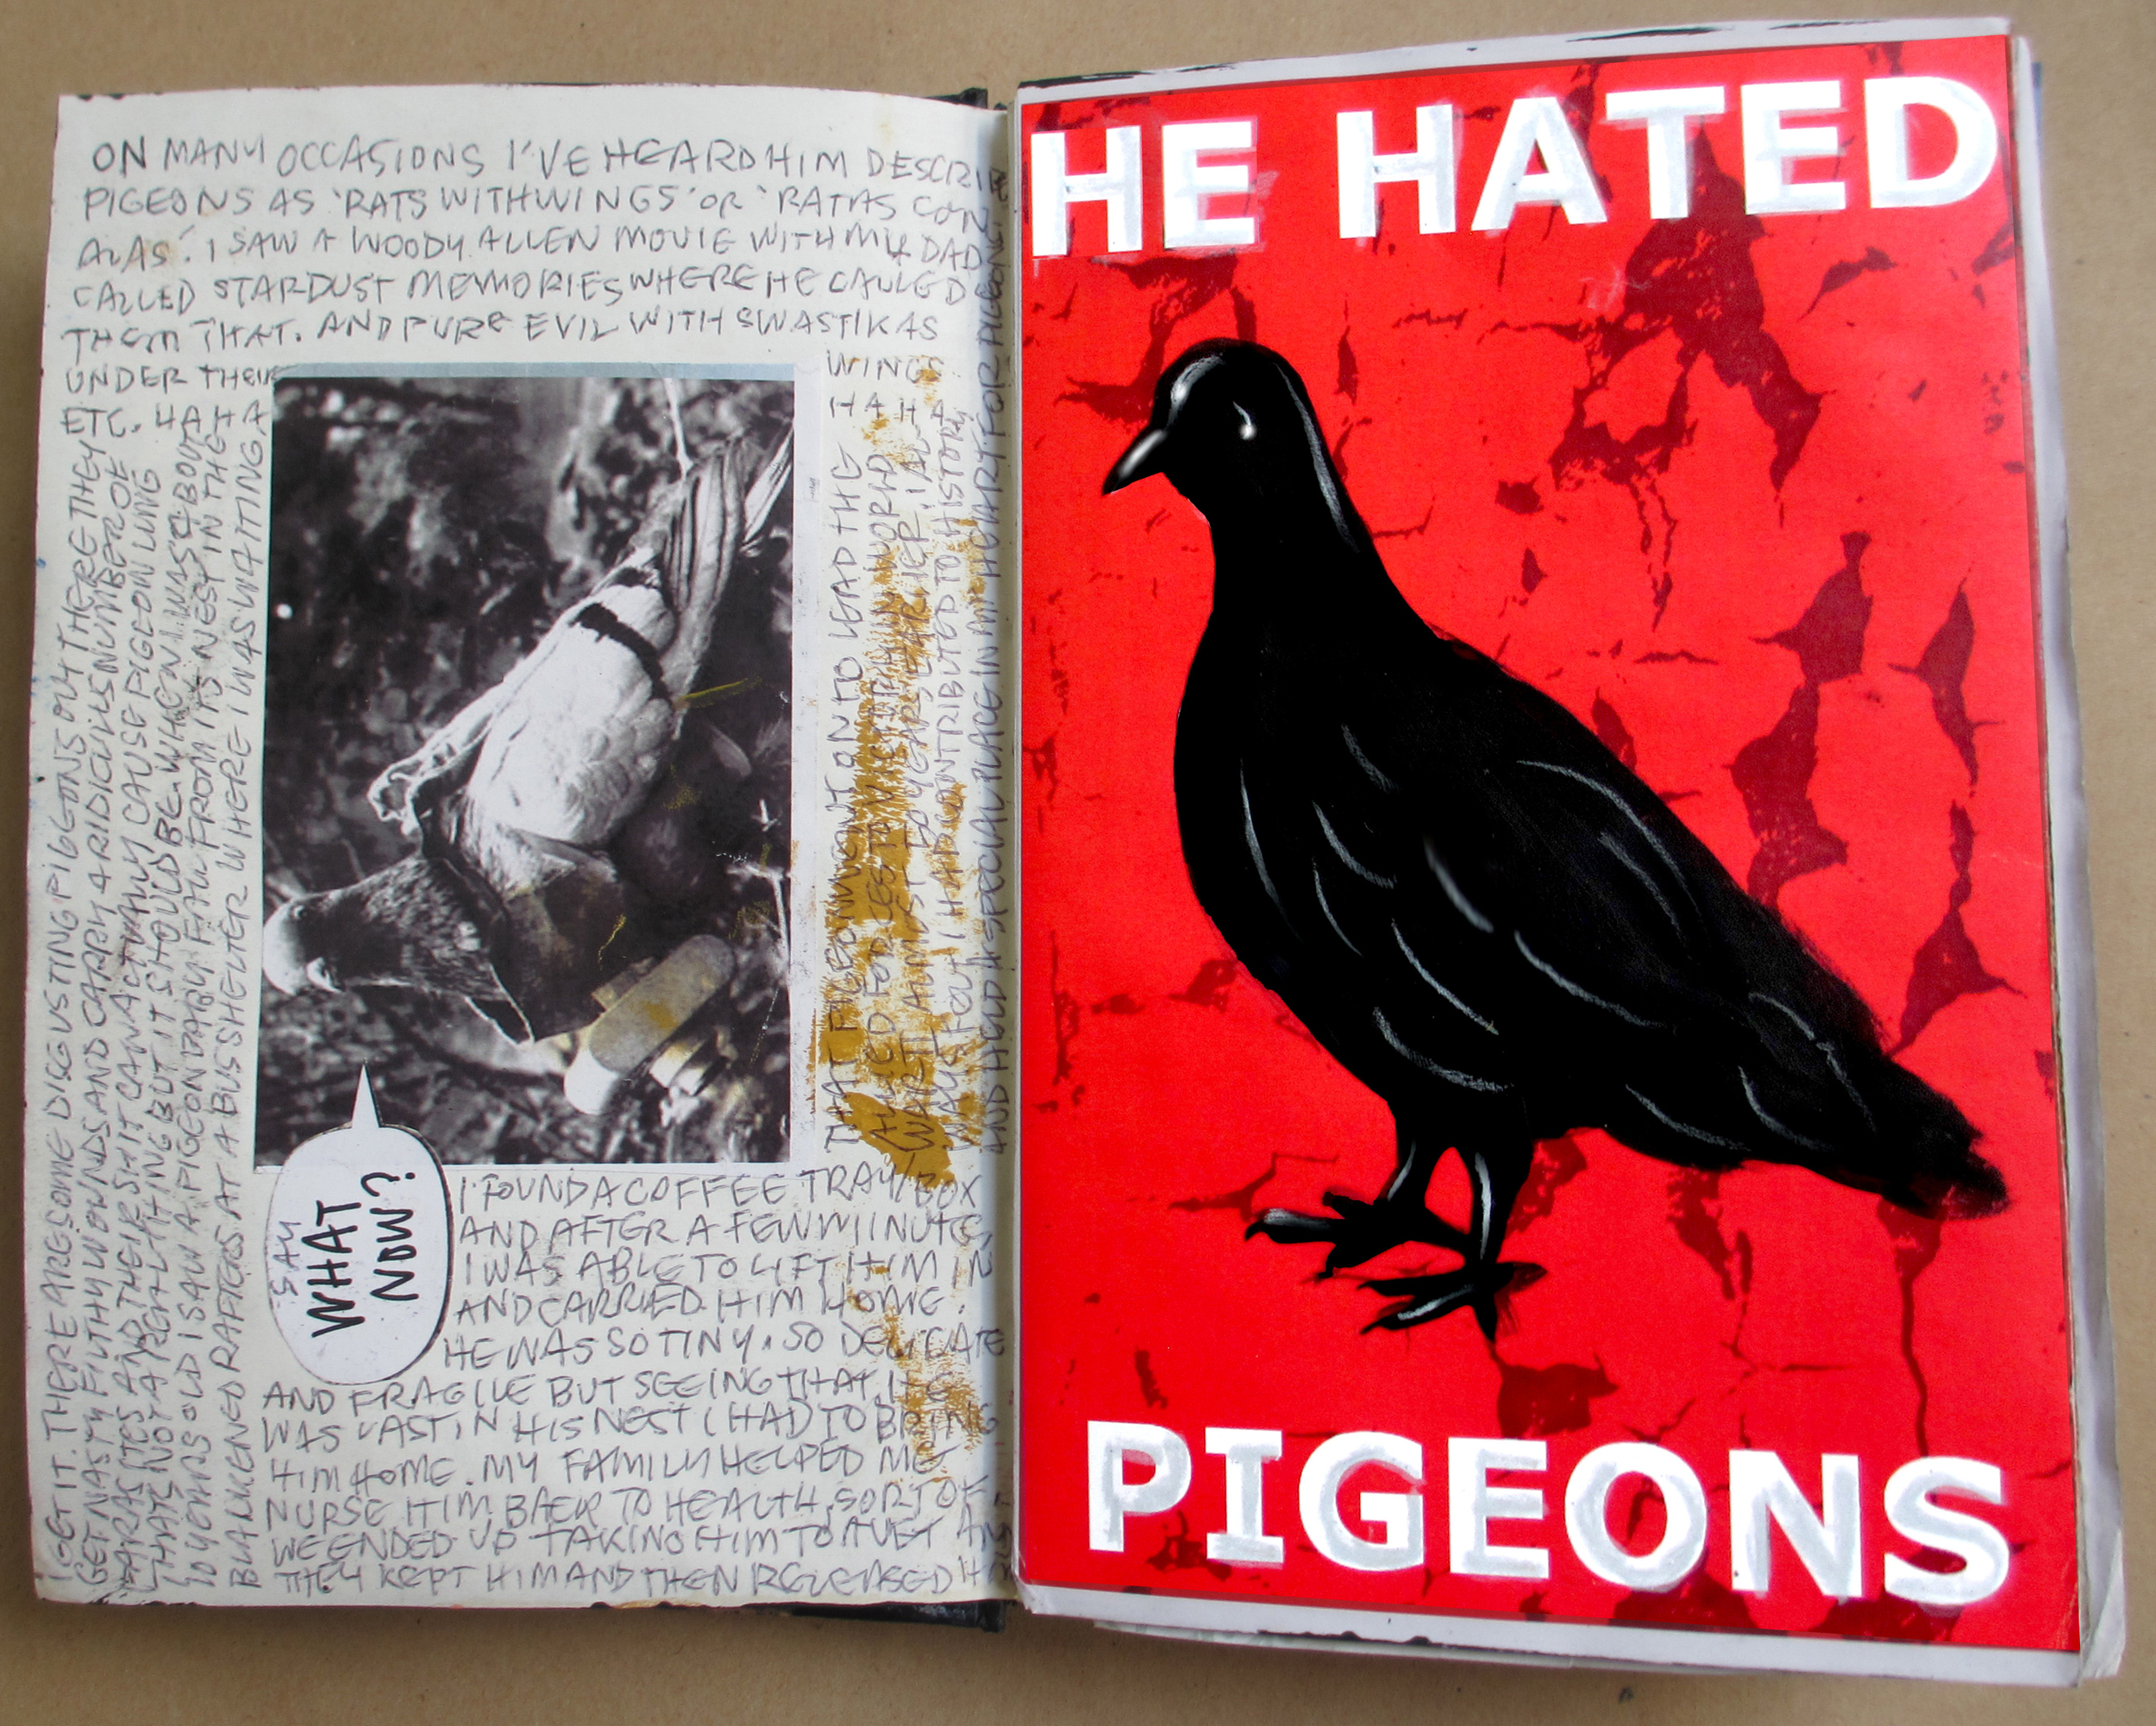 'He Hated Pigeons' 2015